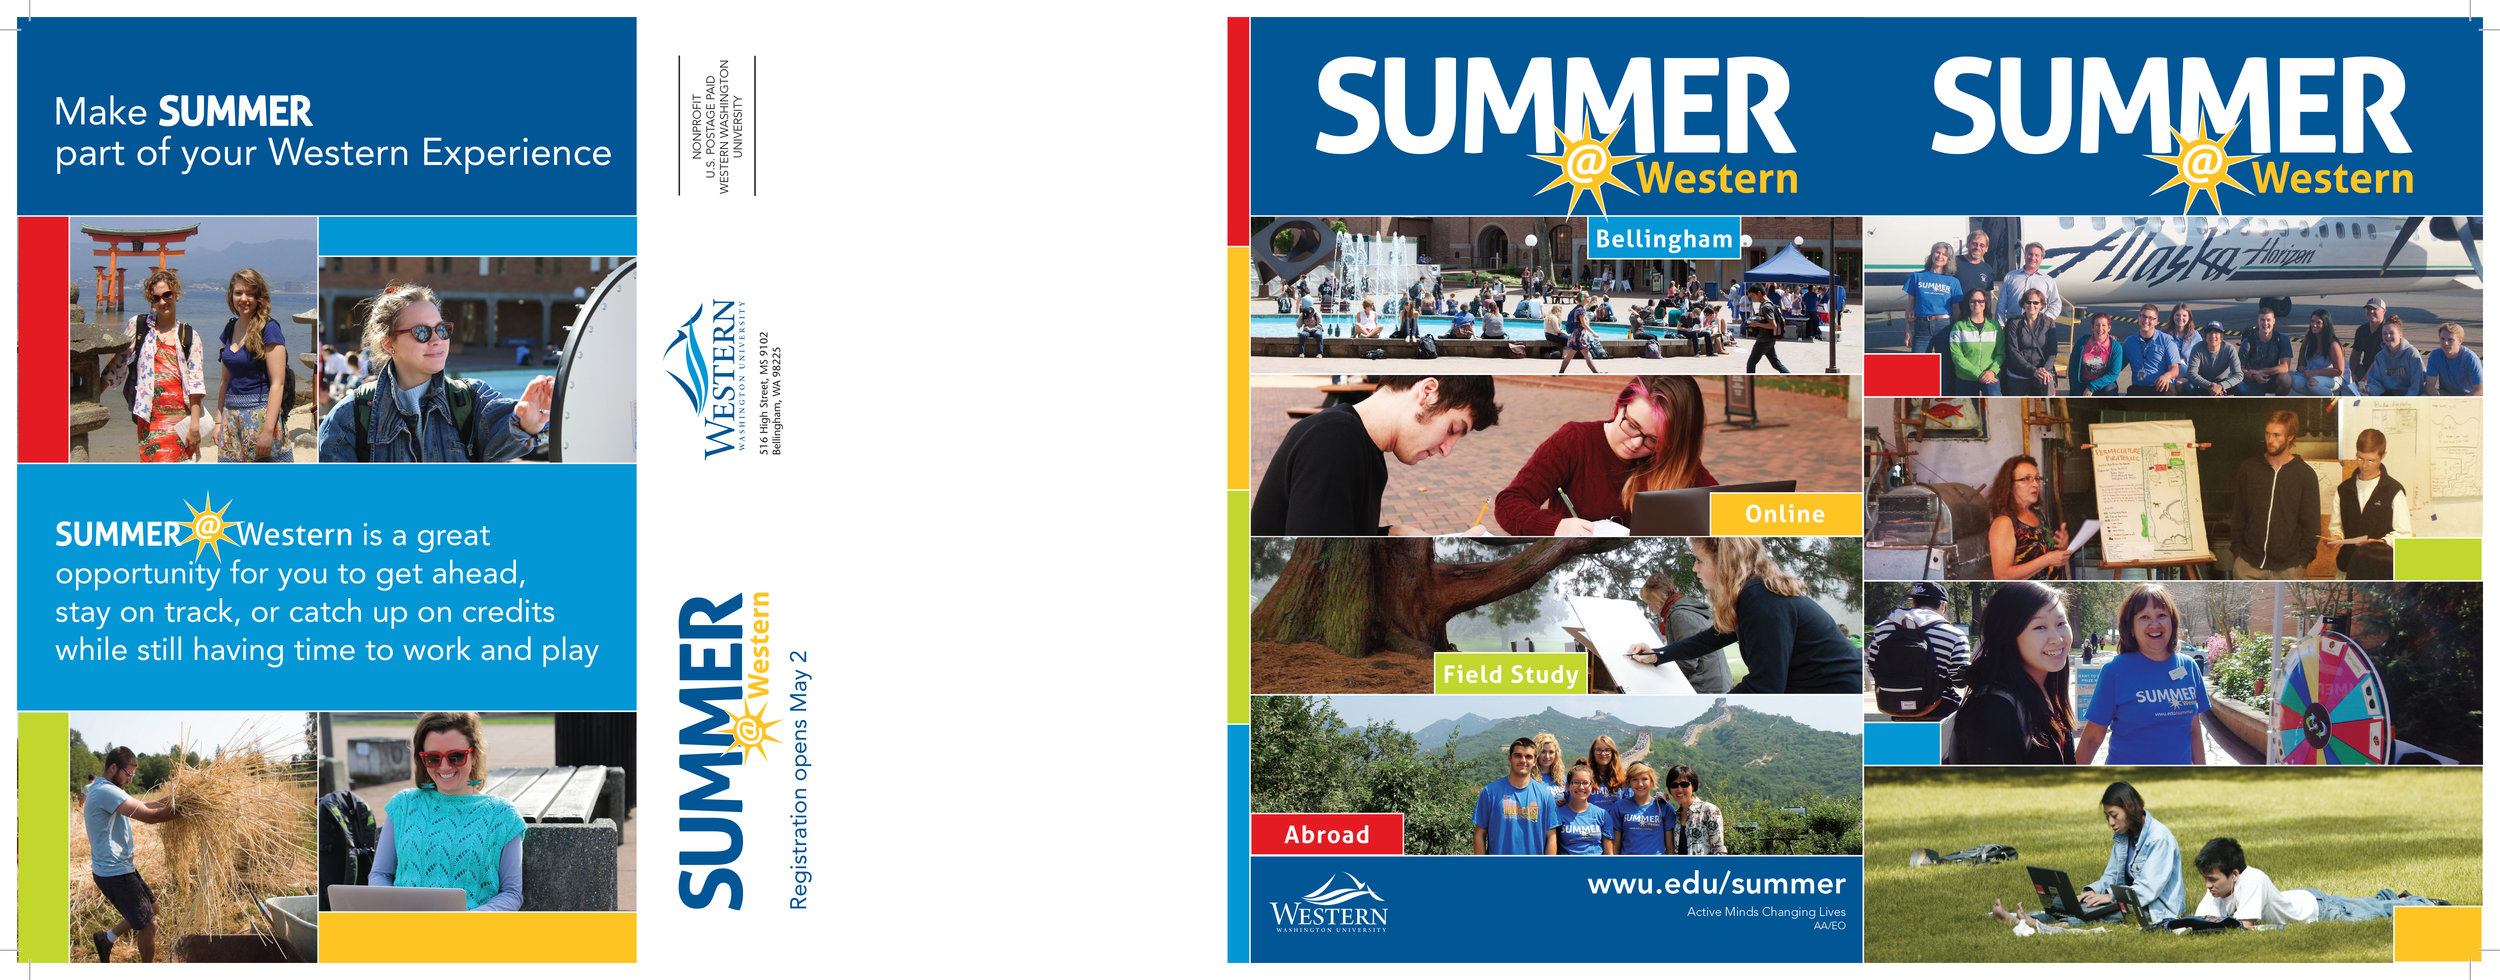 Summer17_brochure_full (1)-1.jpg